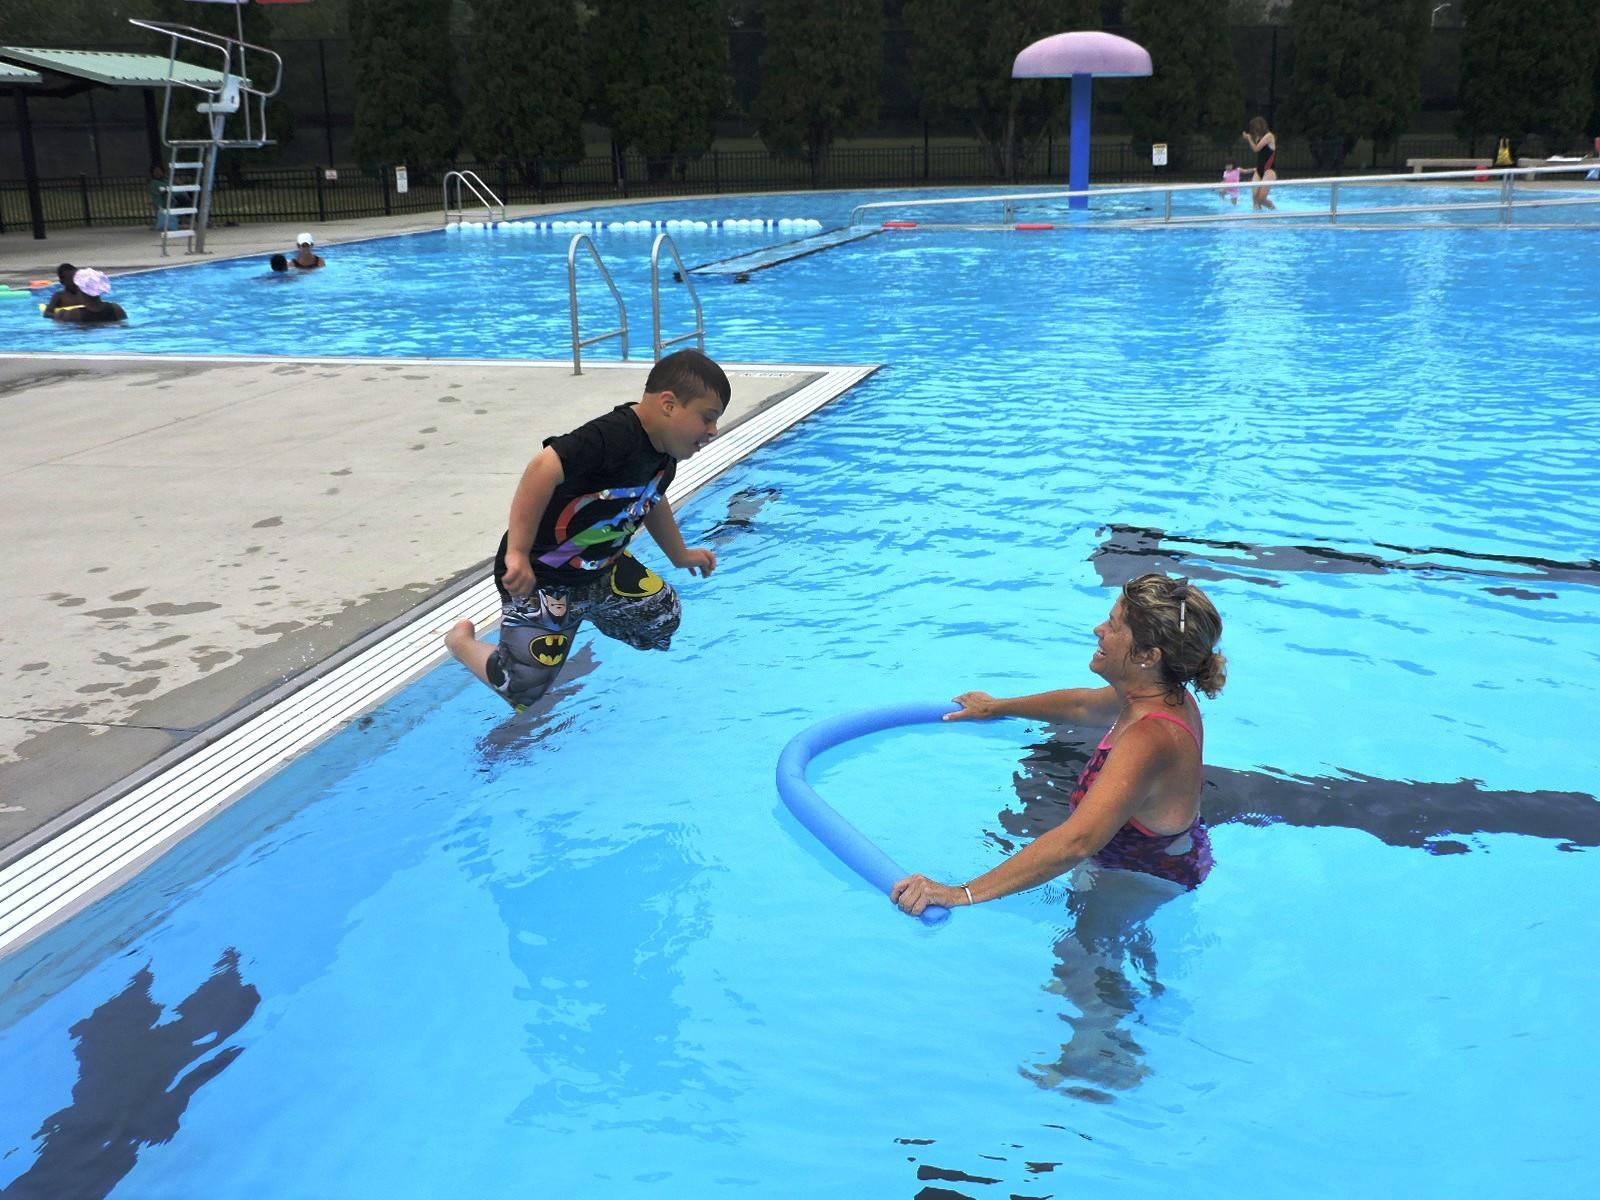 A photo of a young boy jumping into the water from the edge of a pool. A woman is standing in the water in front of him, holding a pool noodle in the water.